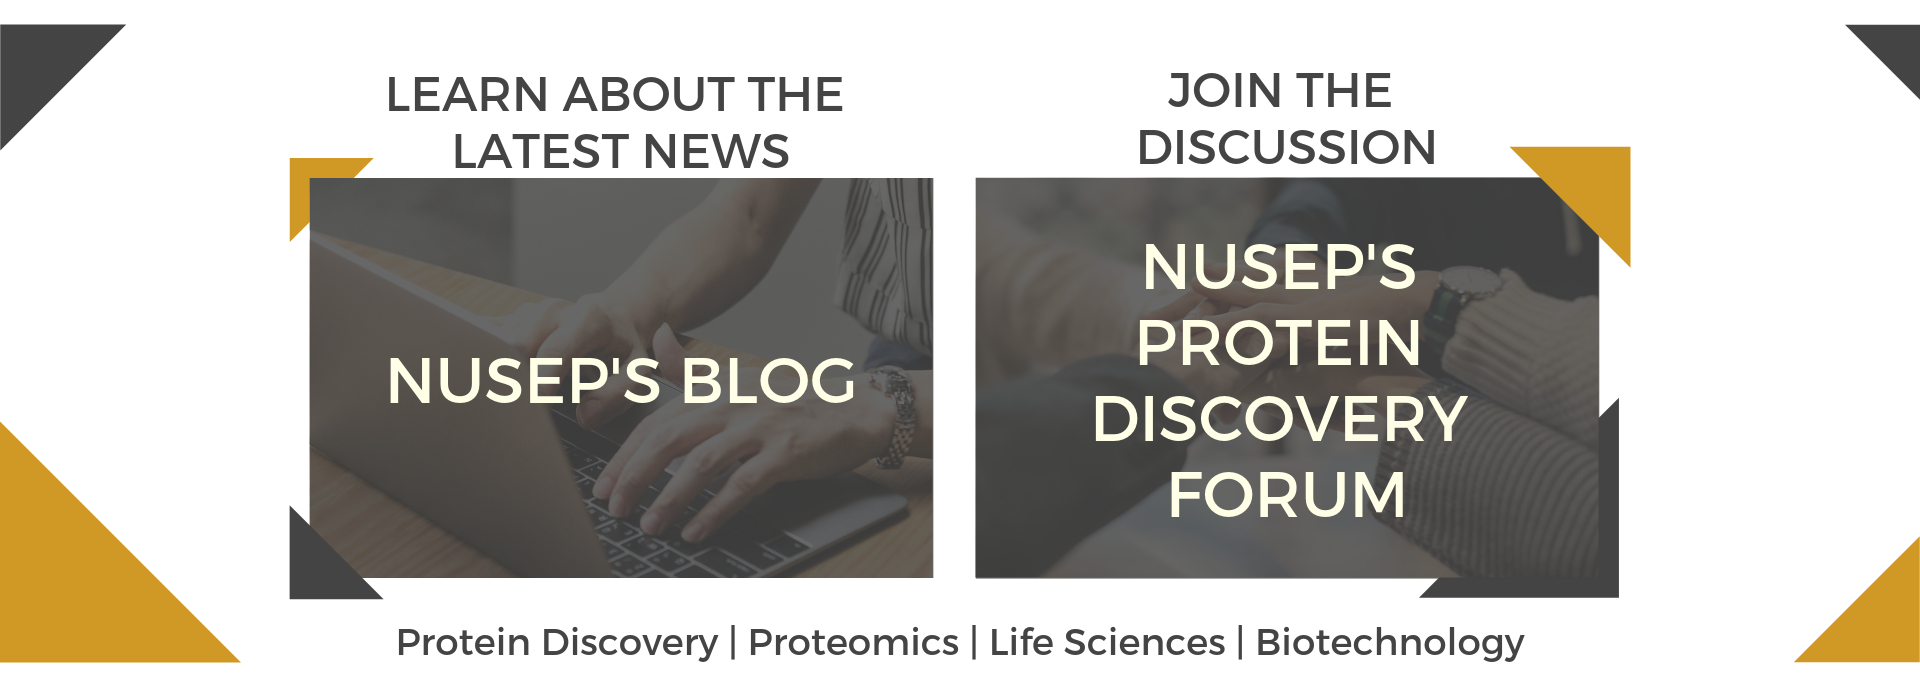 NuSep - Blog and Protein Discovery Forum for proteomics, life sciences, and biotechnology